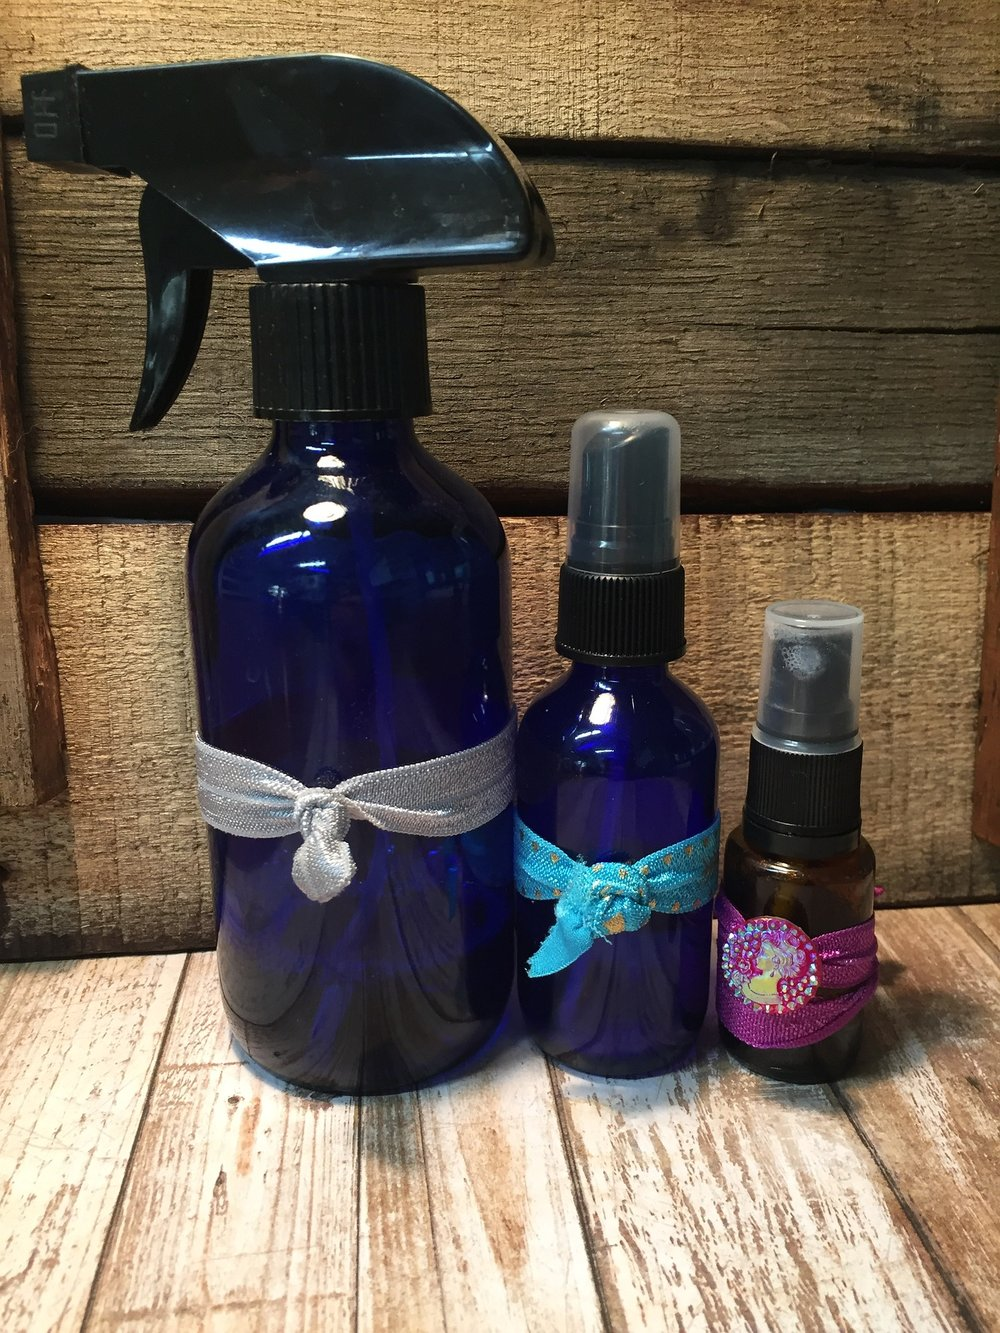 essential-oils-1690888_1920.jpg